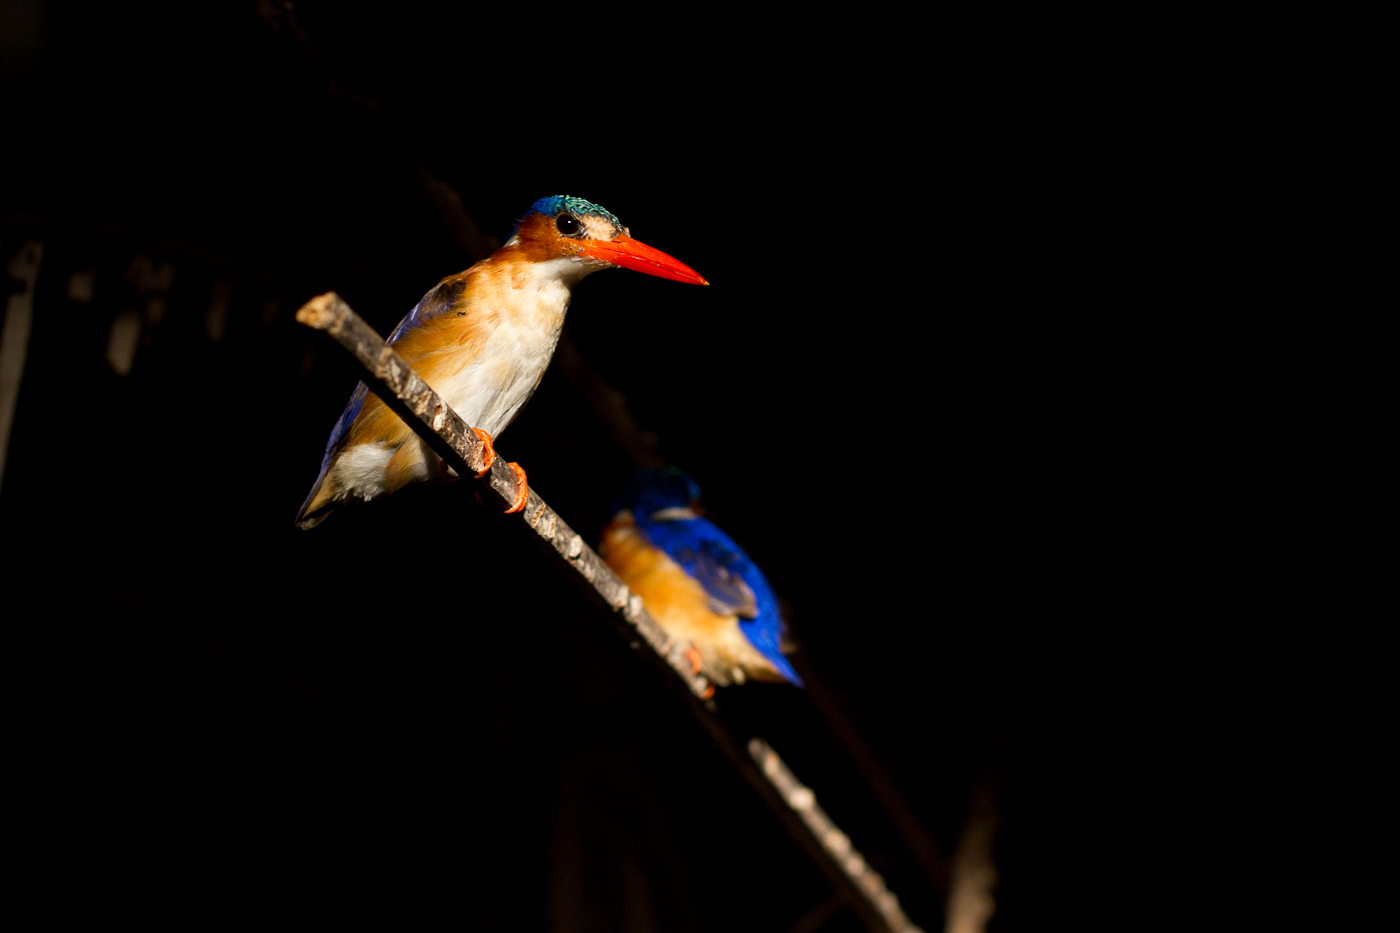 Malachite Kingfishers, photographed during a night boat cruise